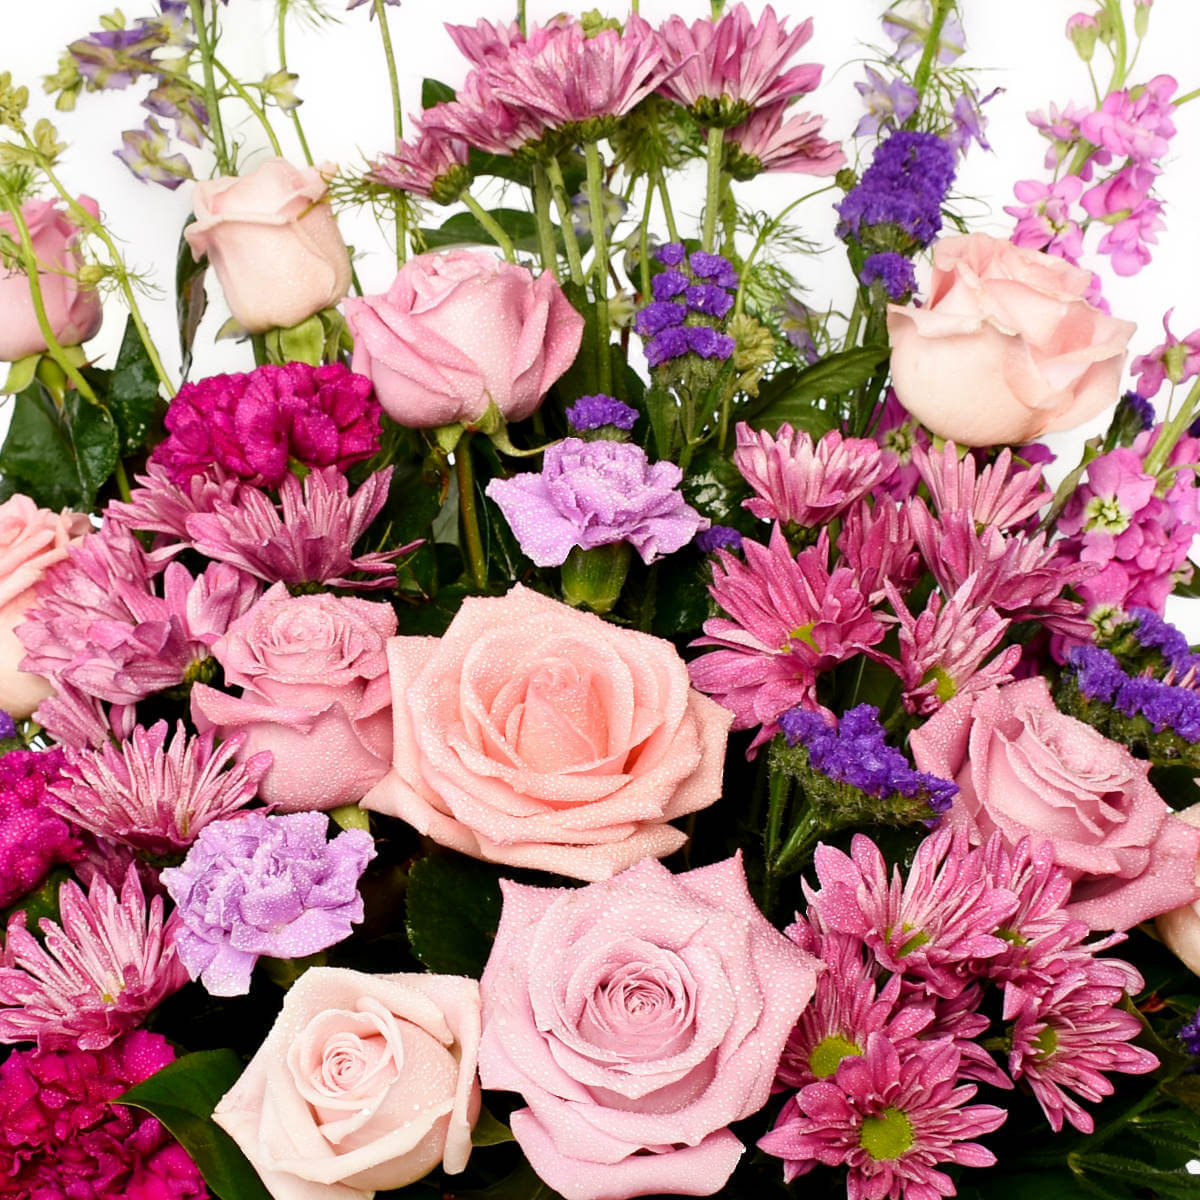 Flower Arrangements for funeral or condolences | Adele Rae